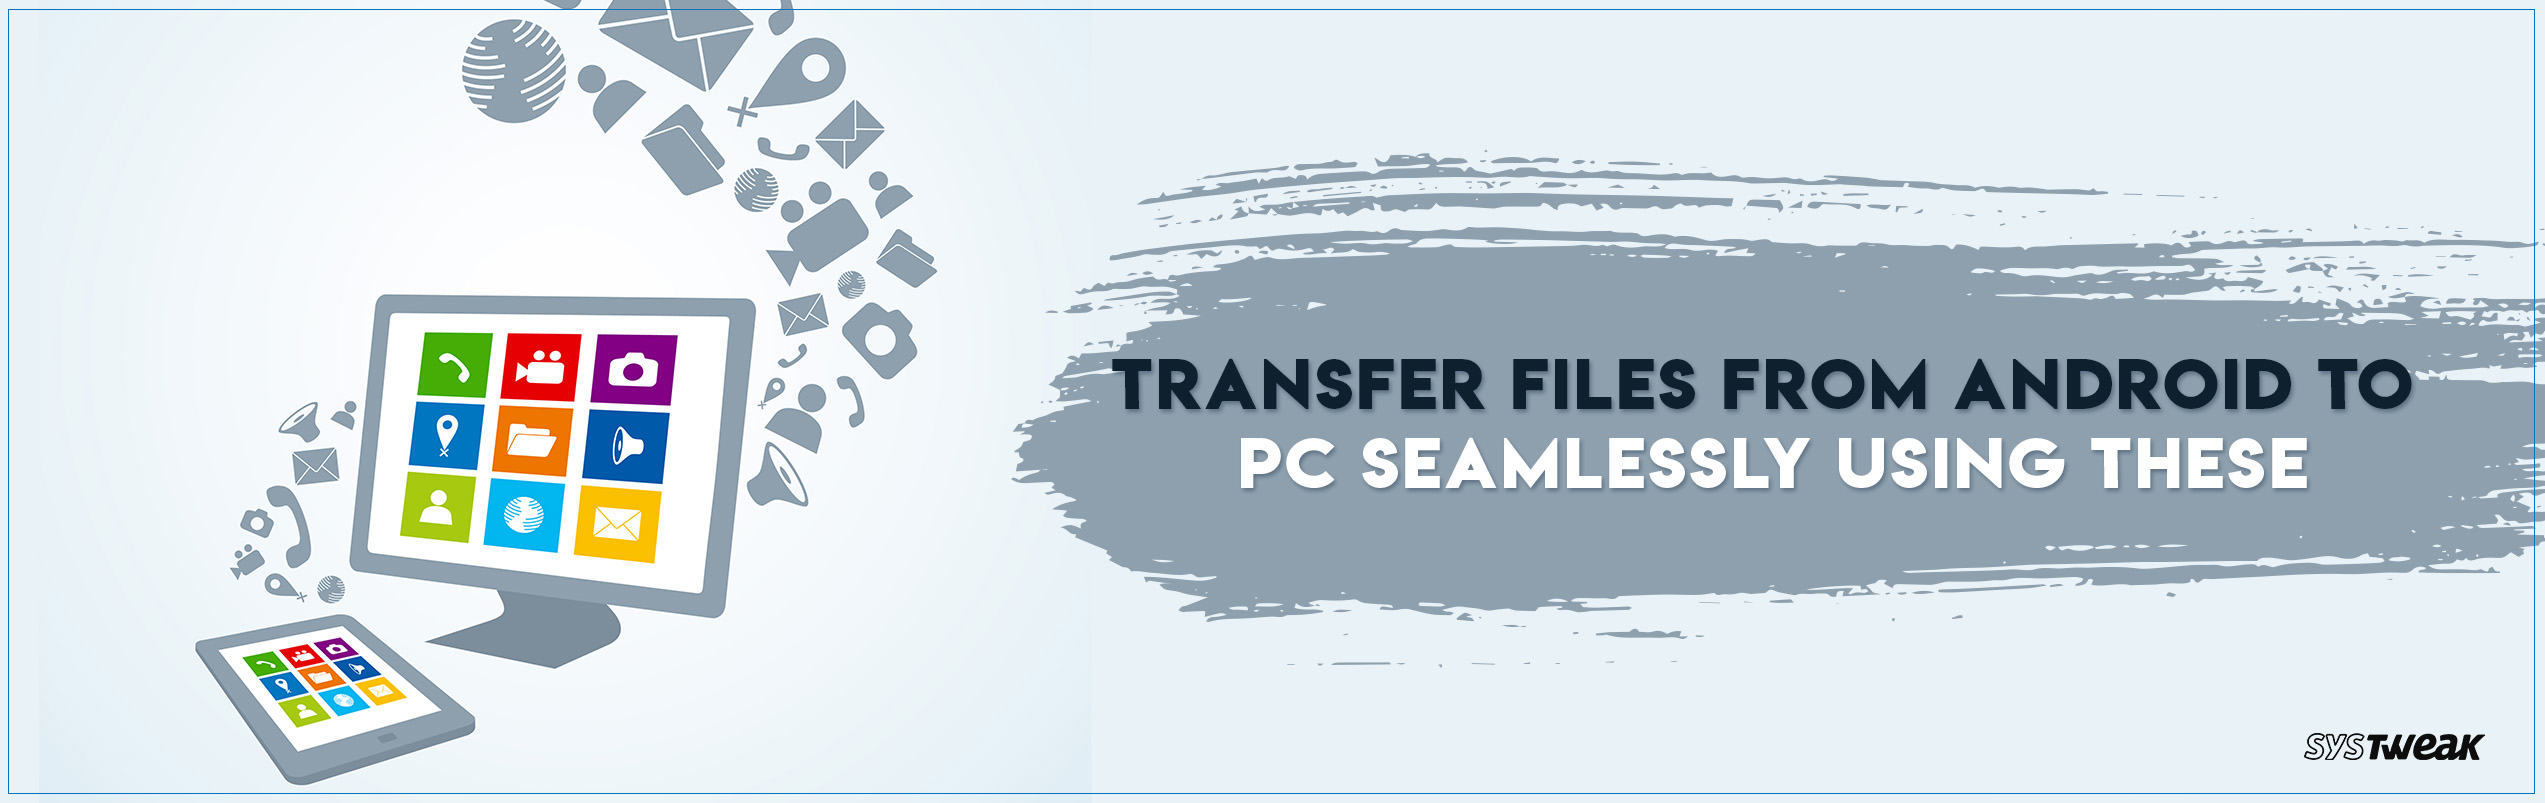 How To Easily Transfer Files From Android To PC